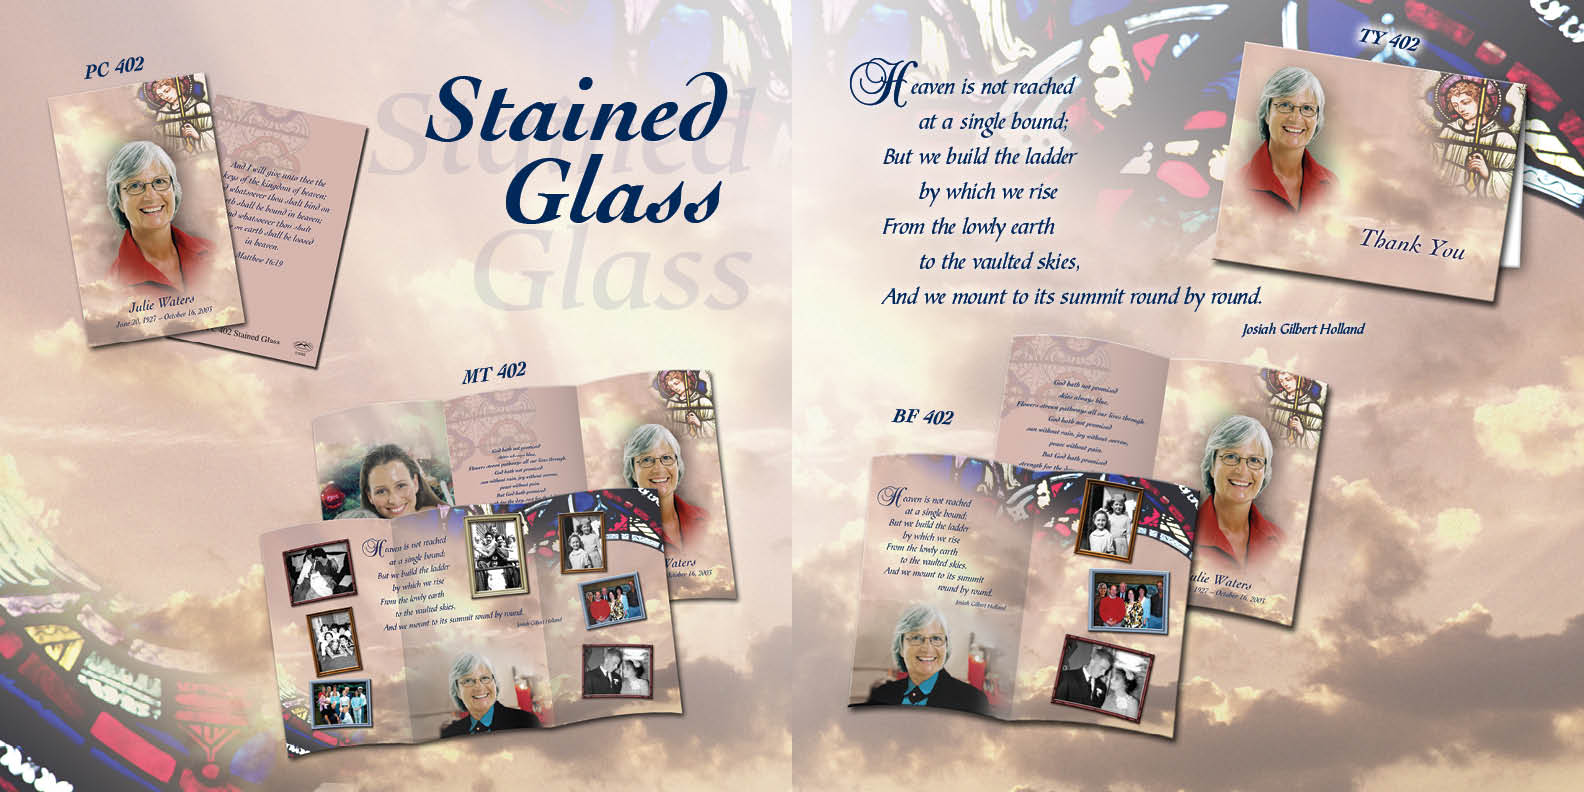 402 Stained Glass